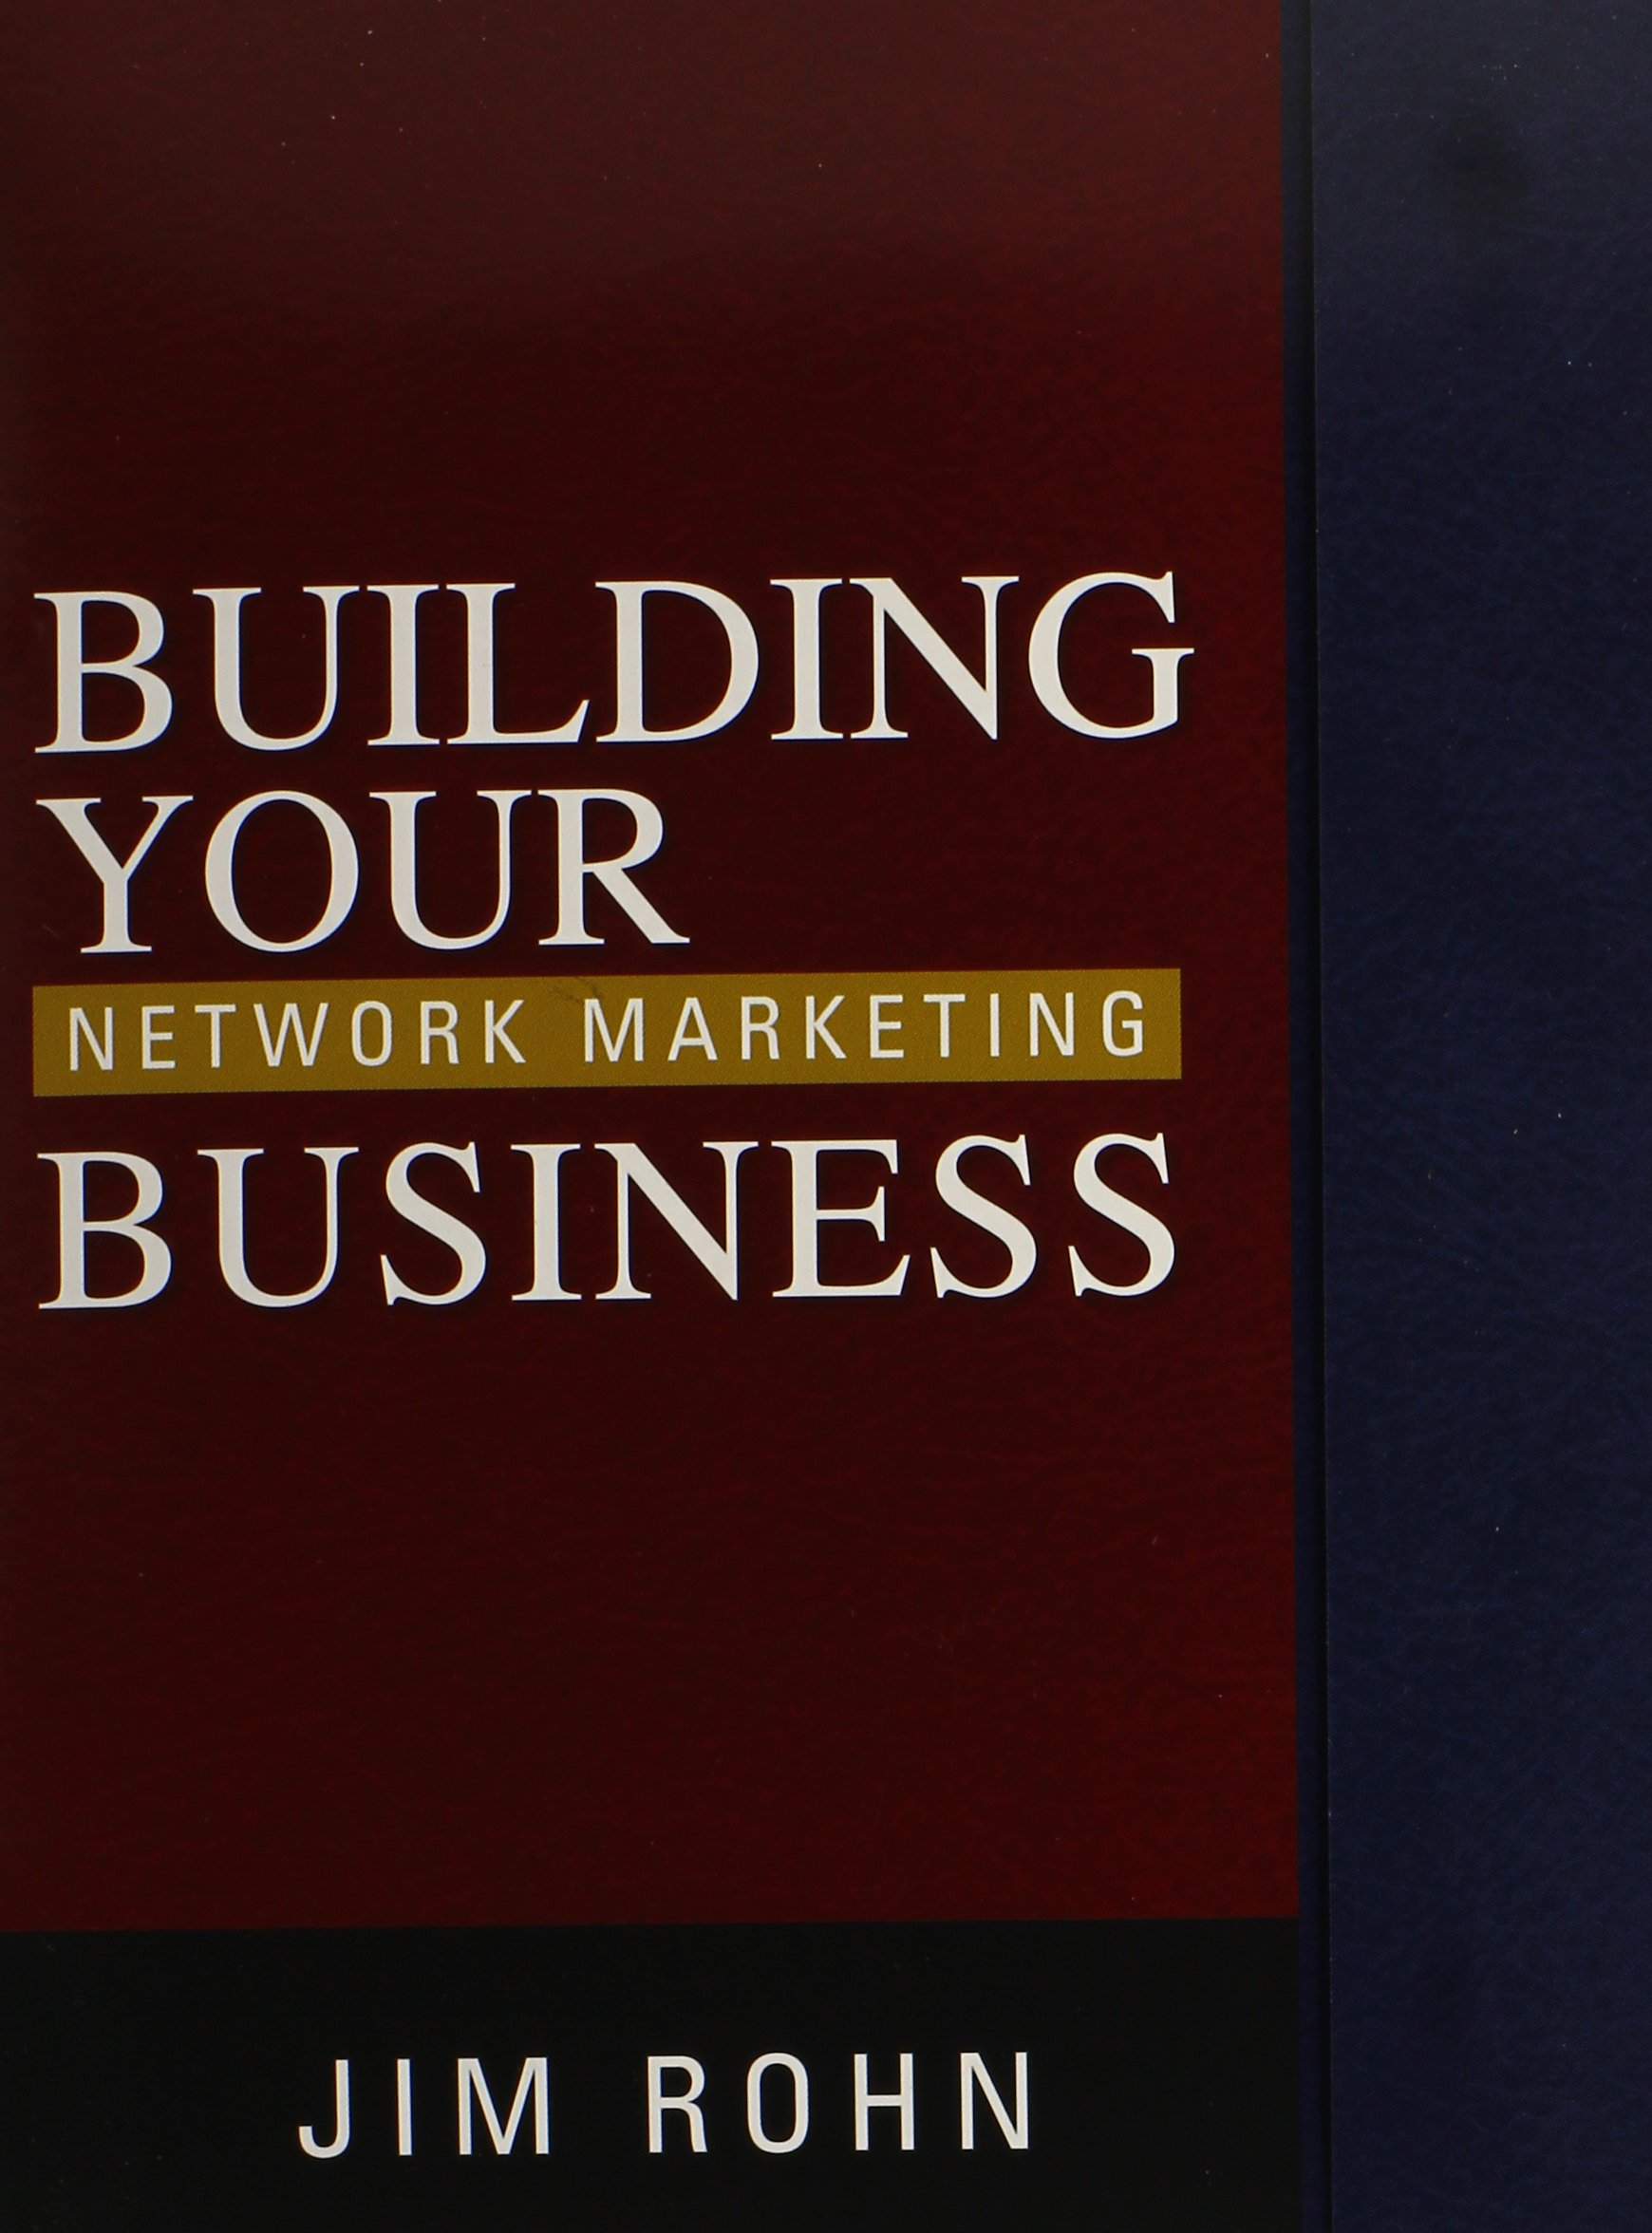 Building Your Network Marketing Business 10 CD Pack: Amazon ...